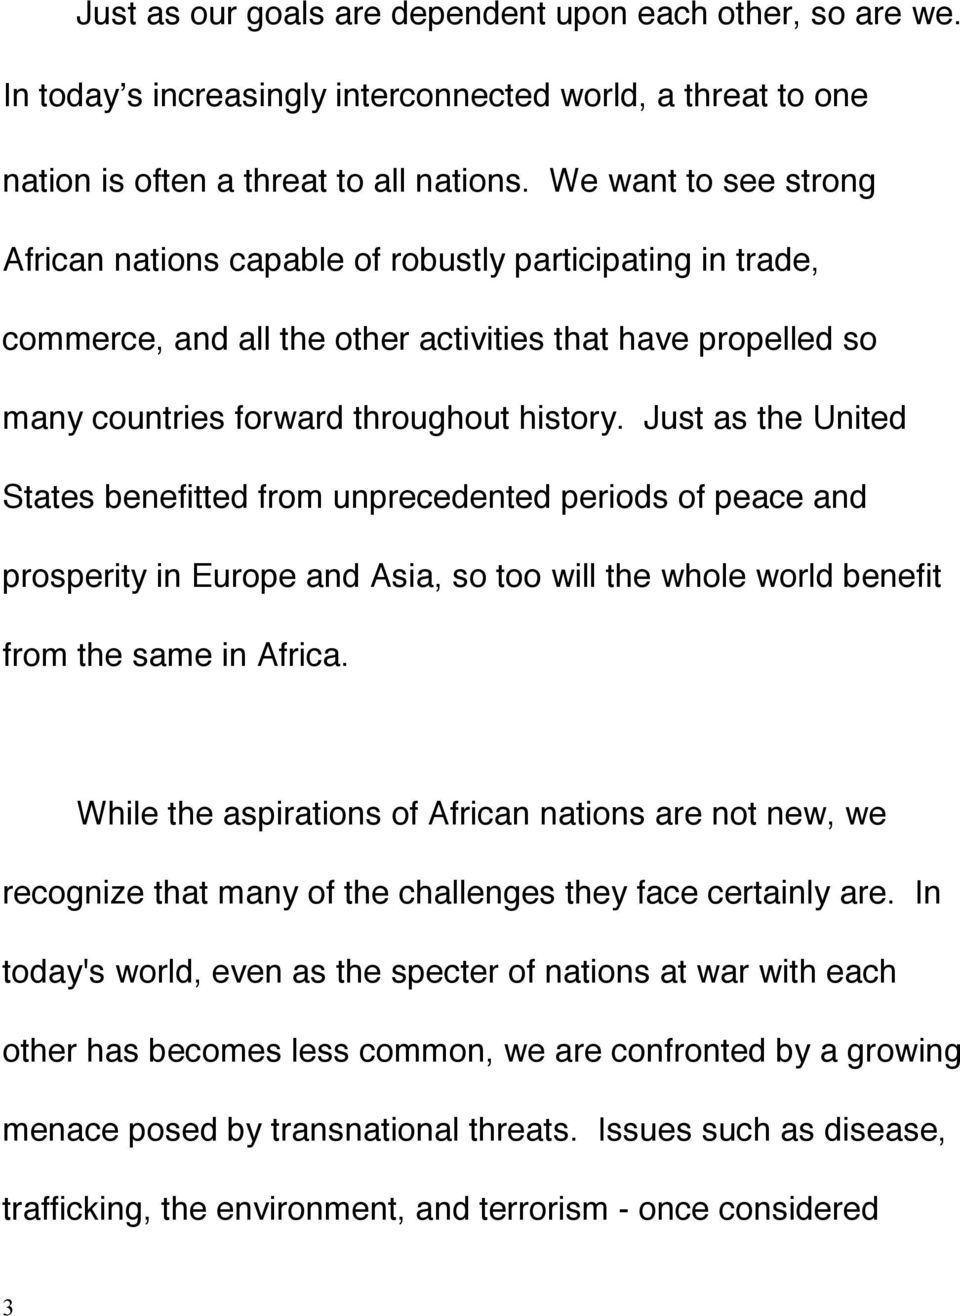 Just as the United States benefitted from unprecedented periods of peace and prosperity in Europe and Asia, so too will the whole world benefit from the same in Africa.